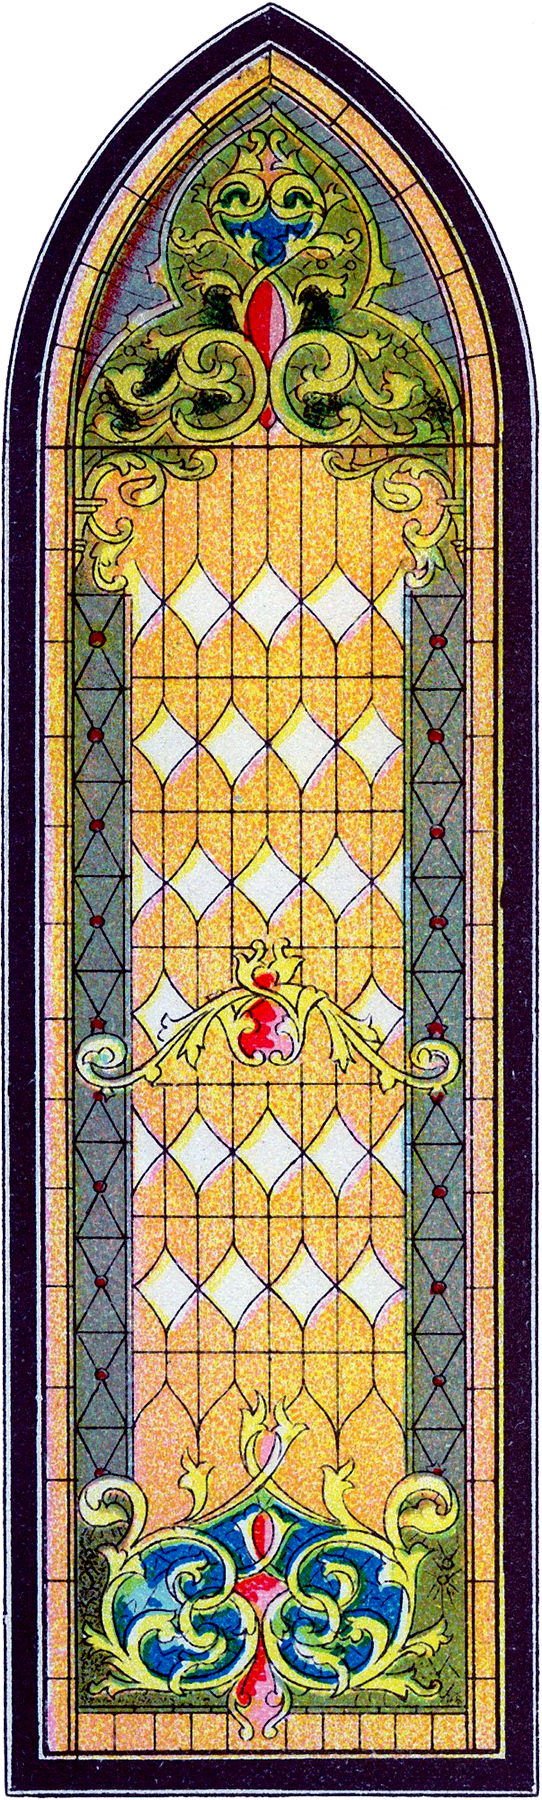 Beautiful Stained Glass Church Window Clip Art! - The ... |Window Pane Clipart